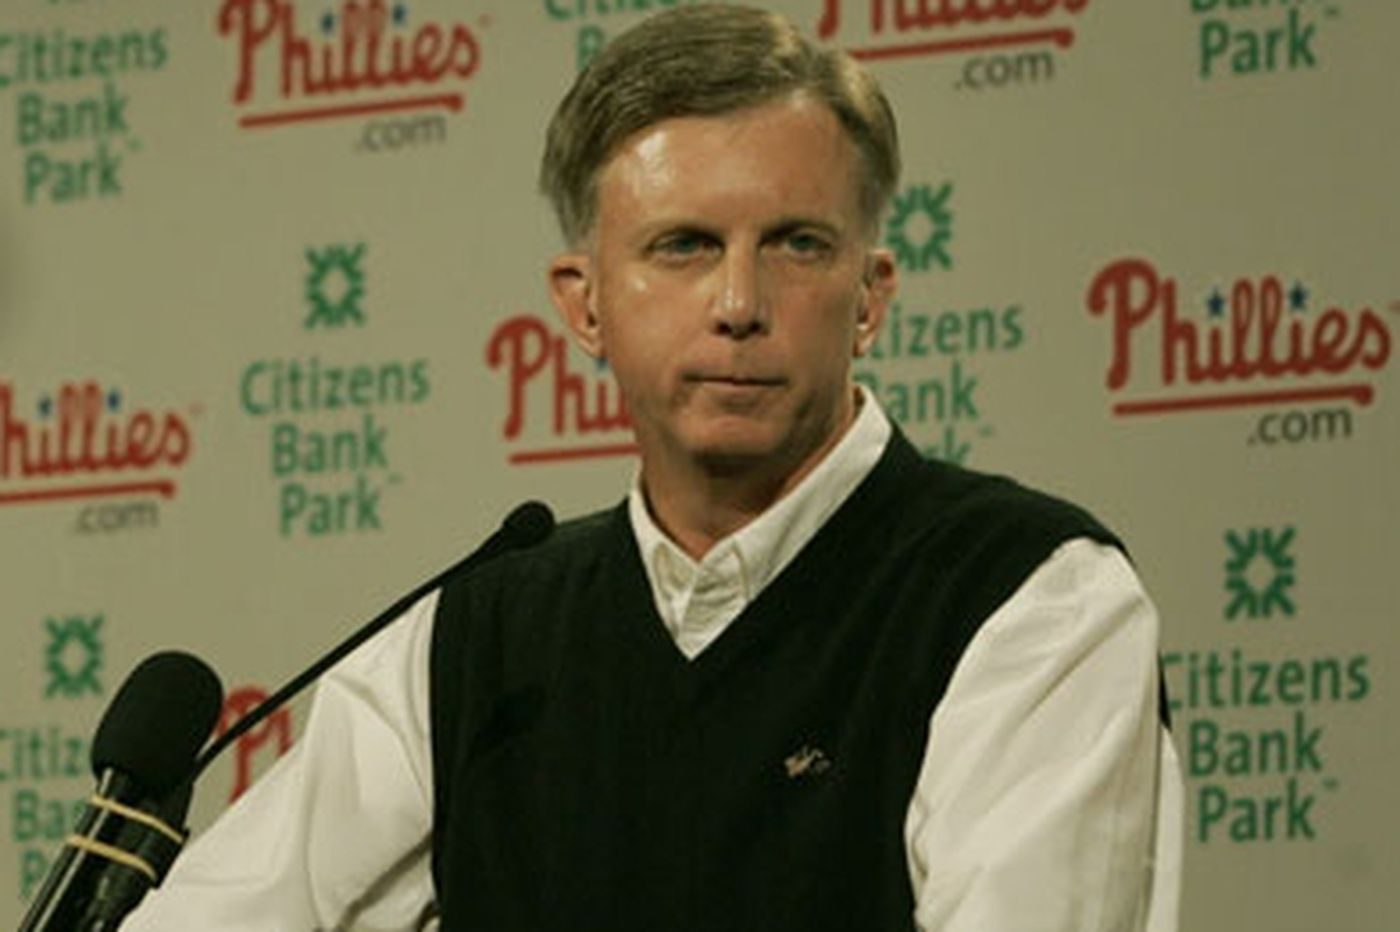 Ed Wade has an interesting perspective about what's going on with the Phillies | Bob Brookover